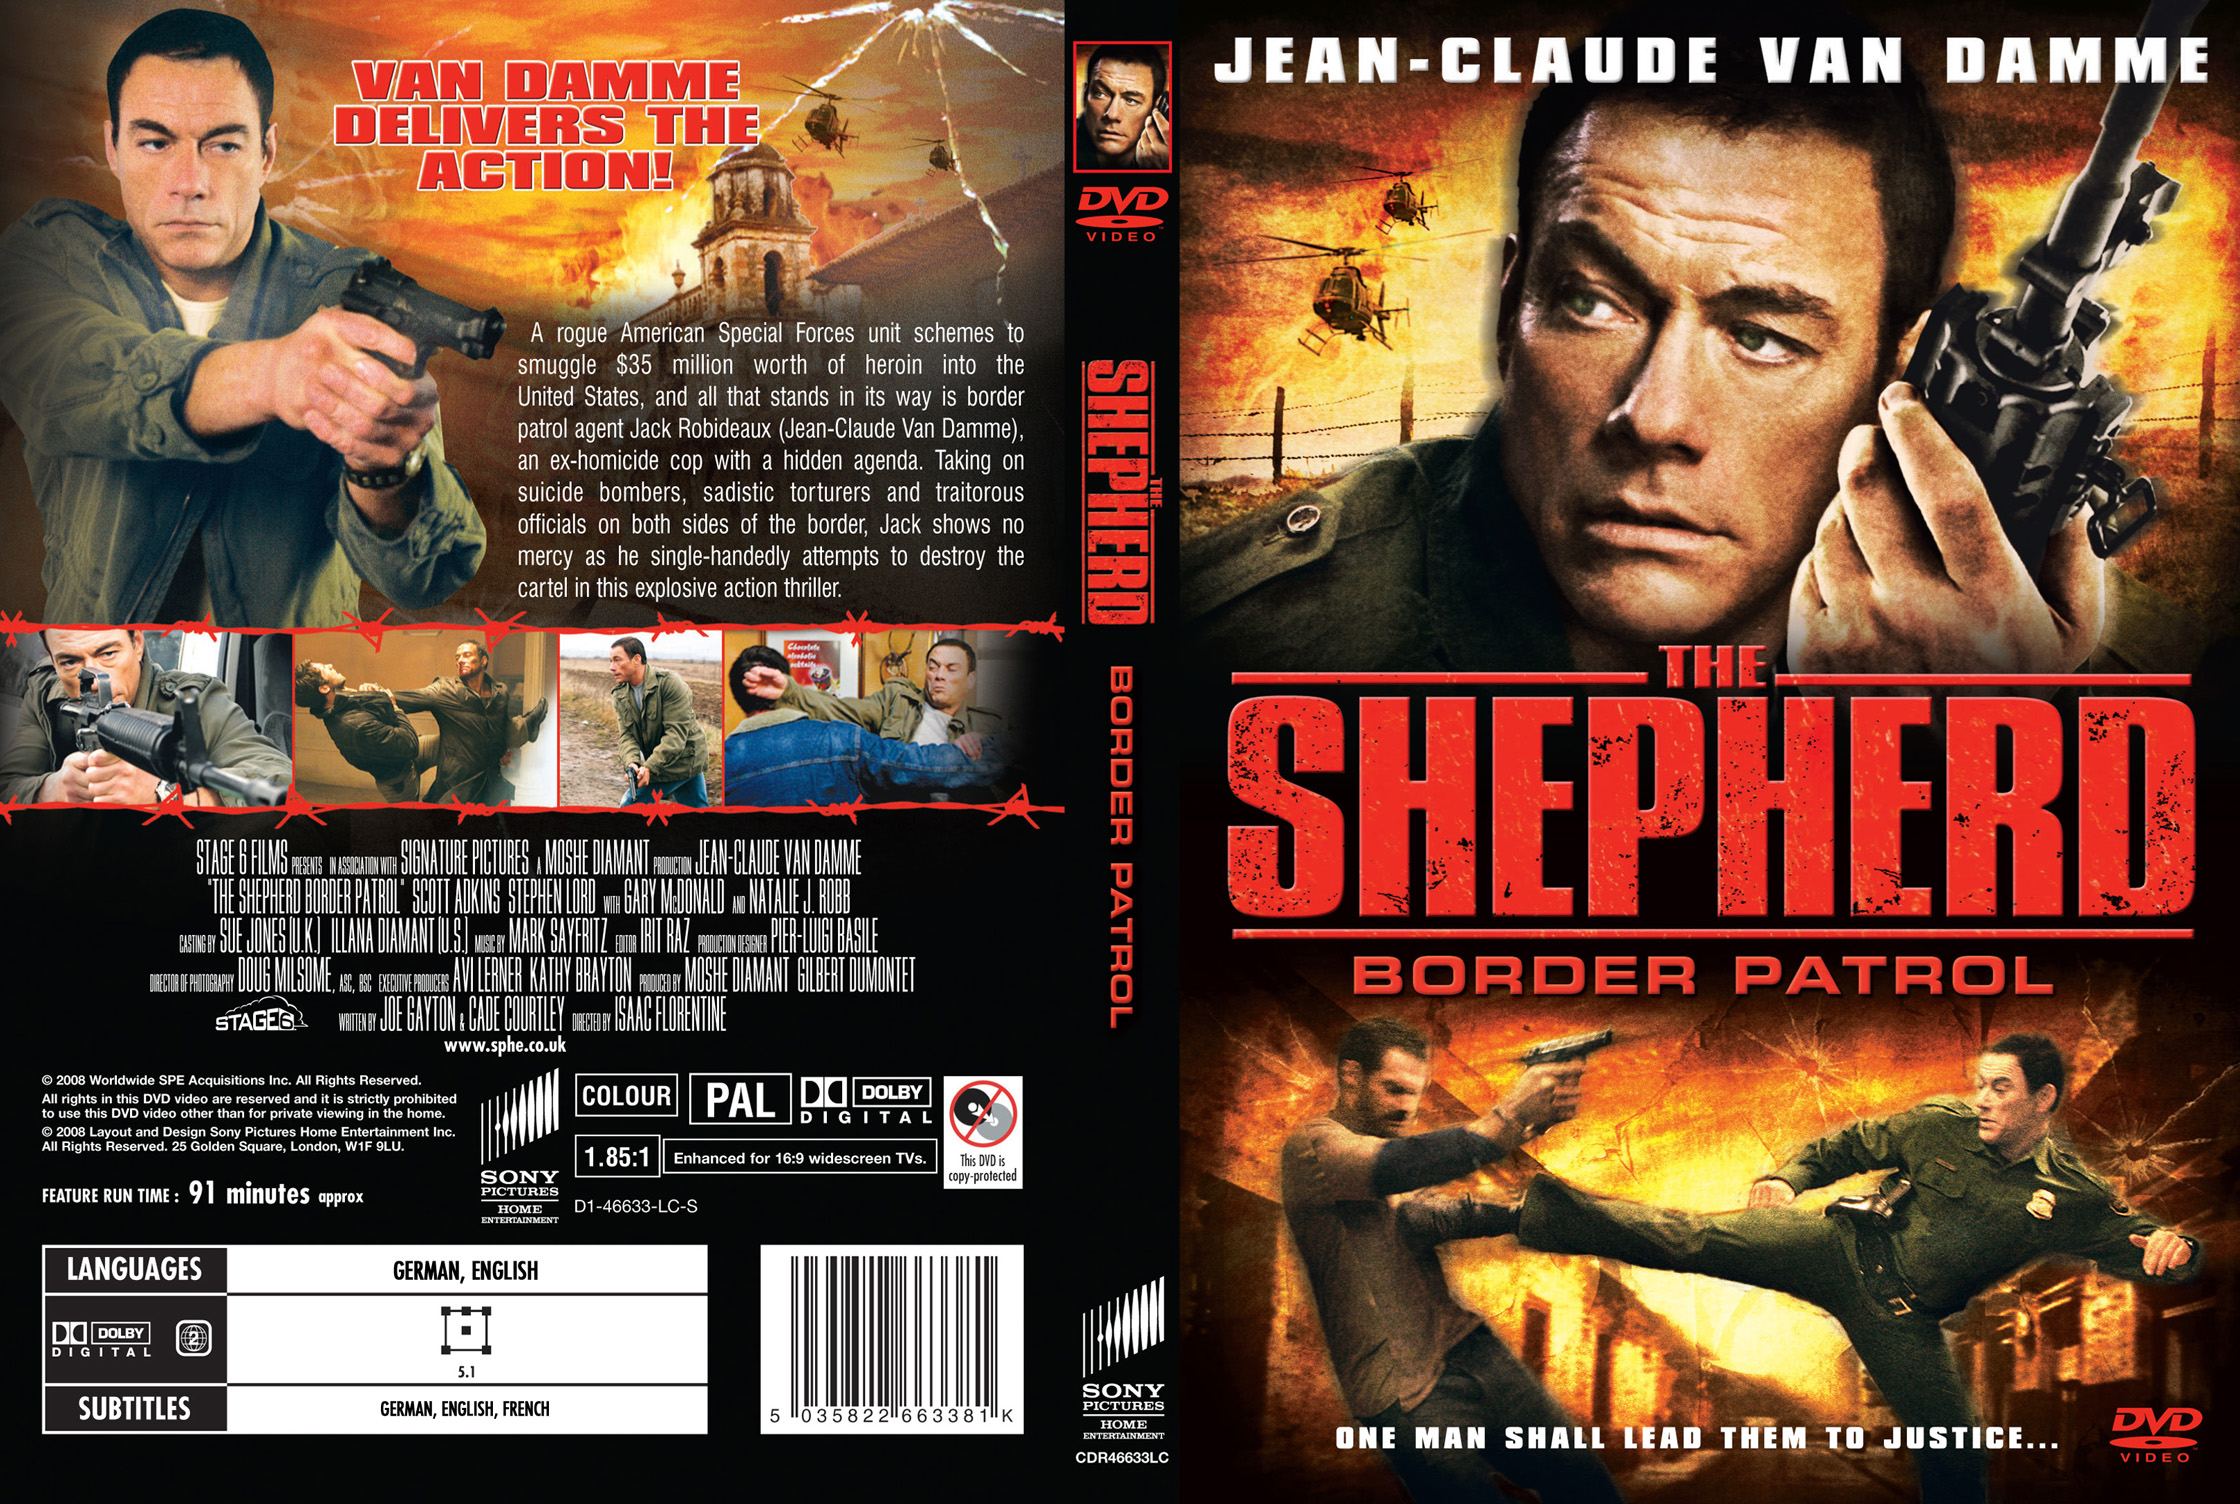 کاور فیلم The Shepherd Border Patrol